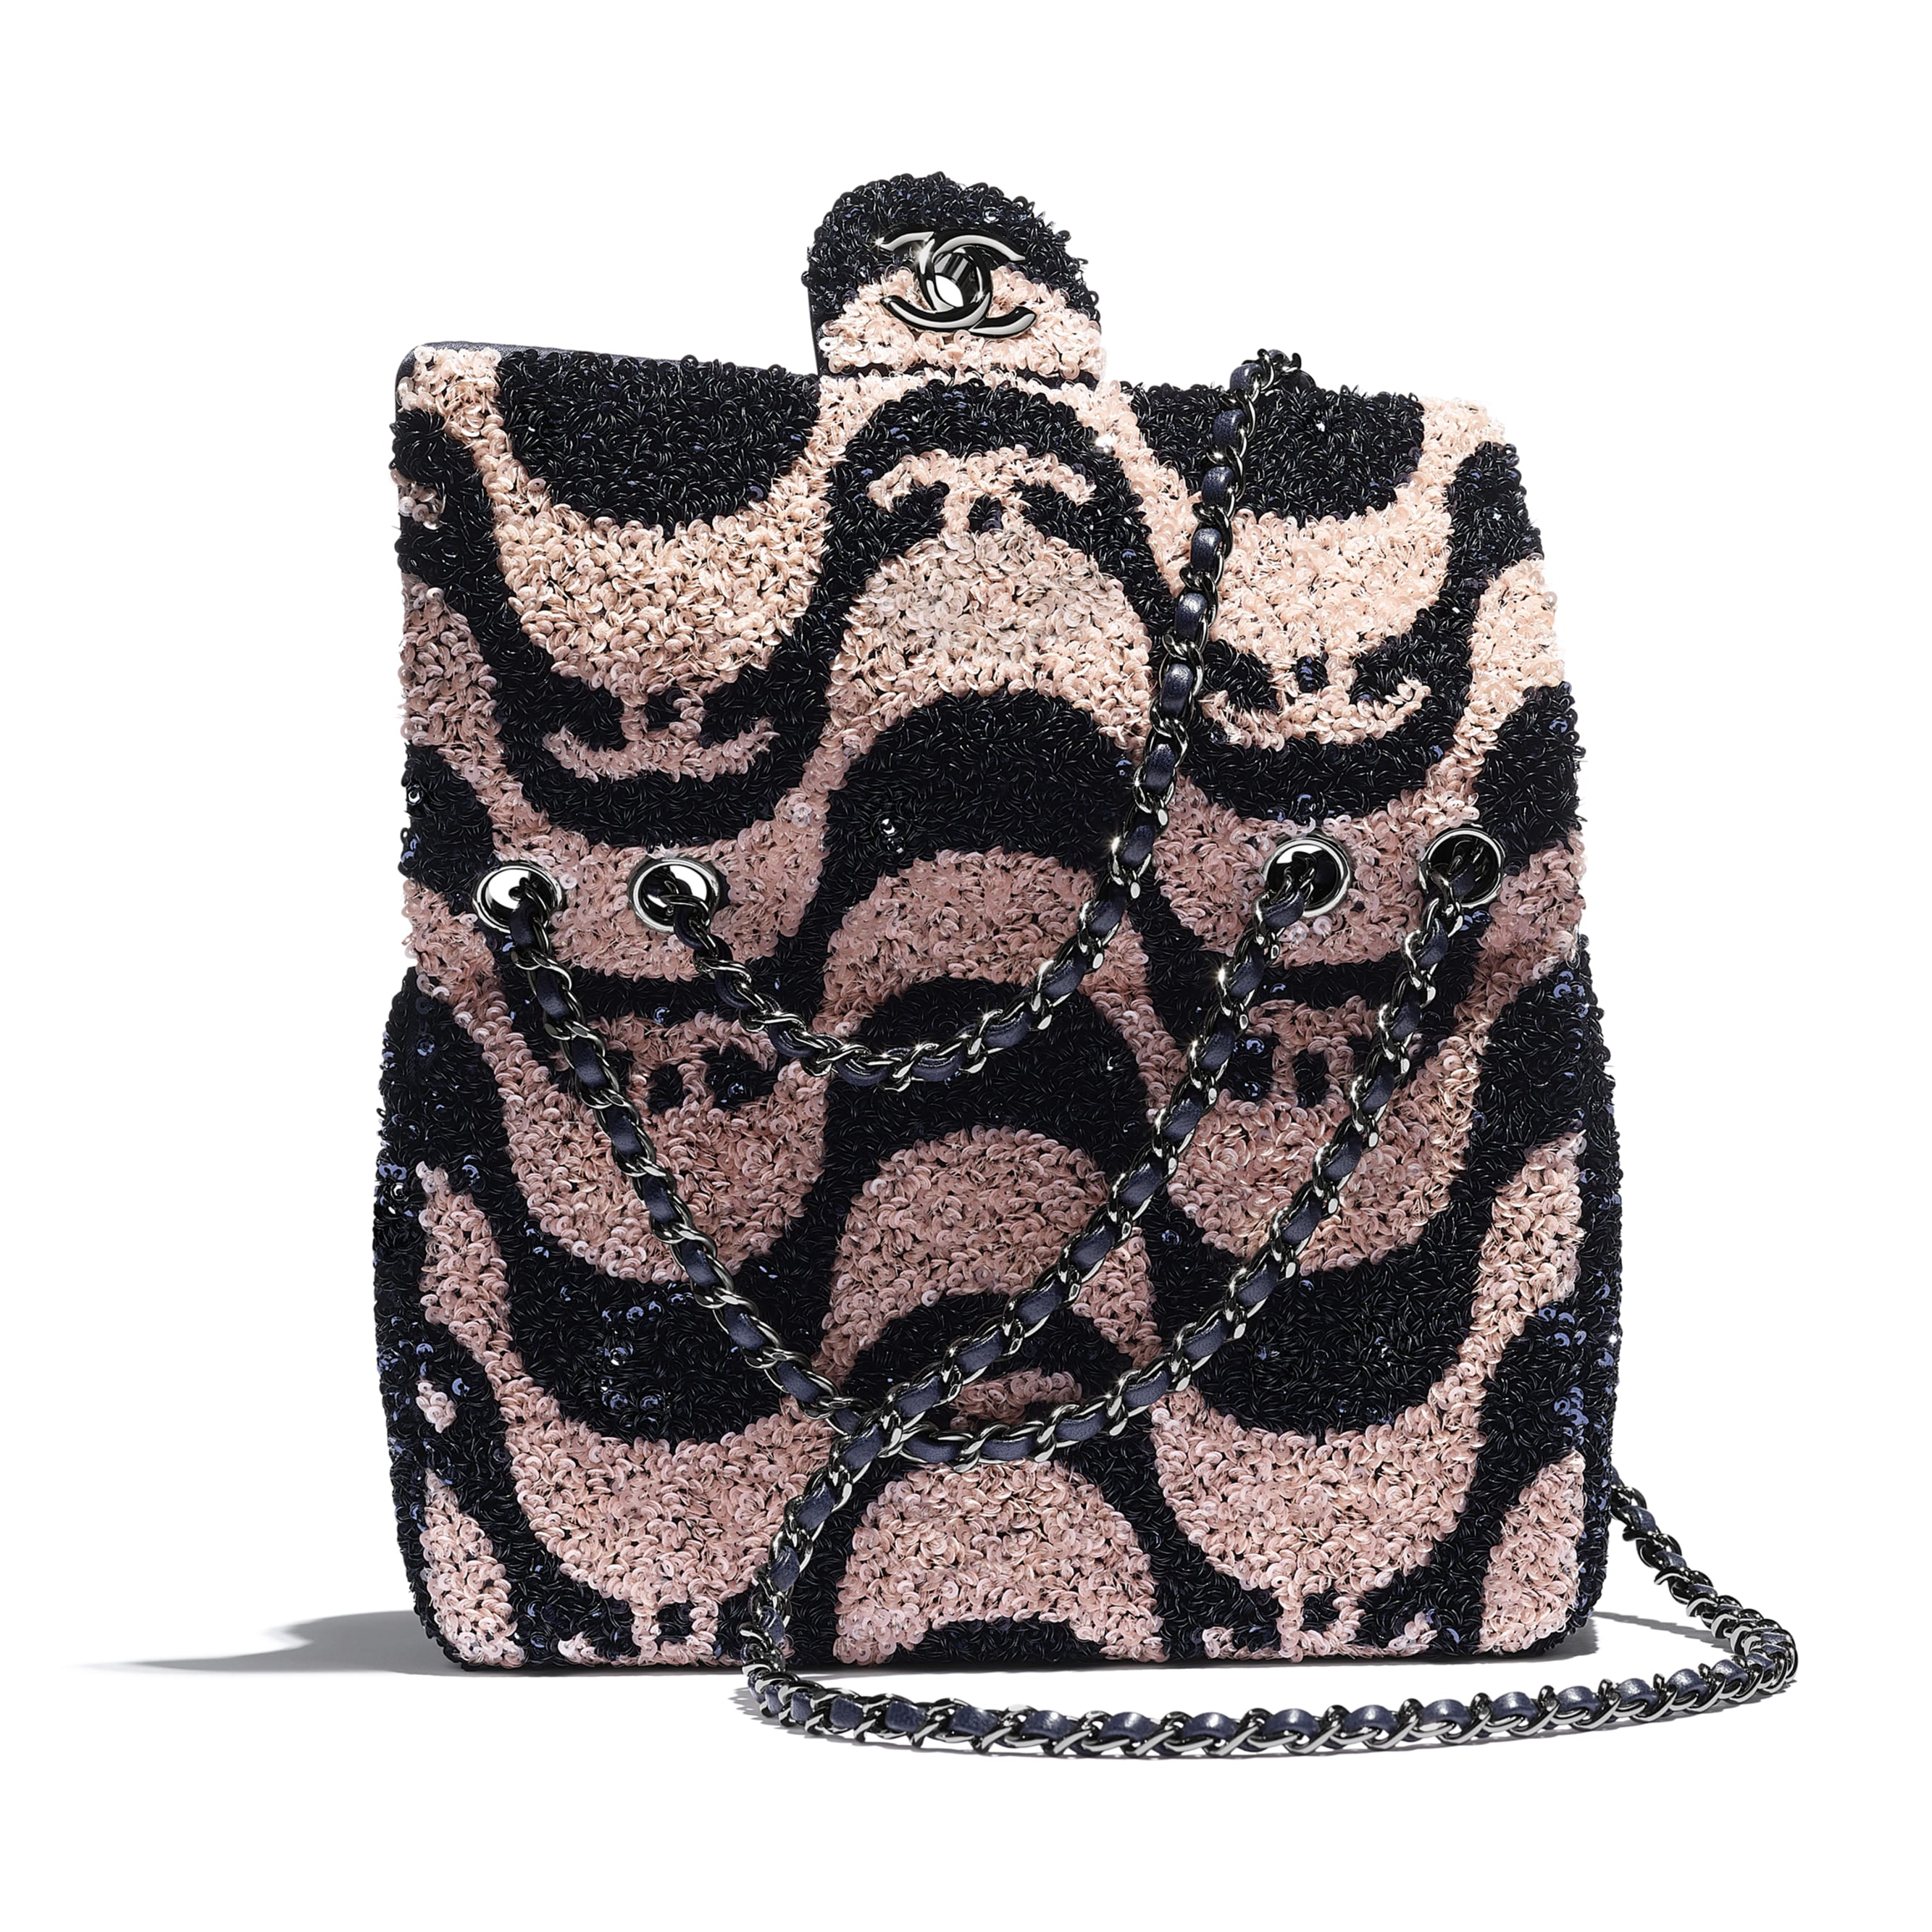 Small Flap Bag - Navy Blue & Pink - Sequins & Ruthenium-Finish Metal - CHANEL - Extra view - see standard sized version